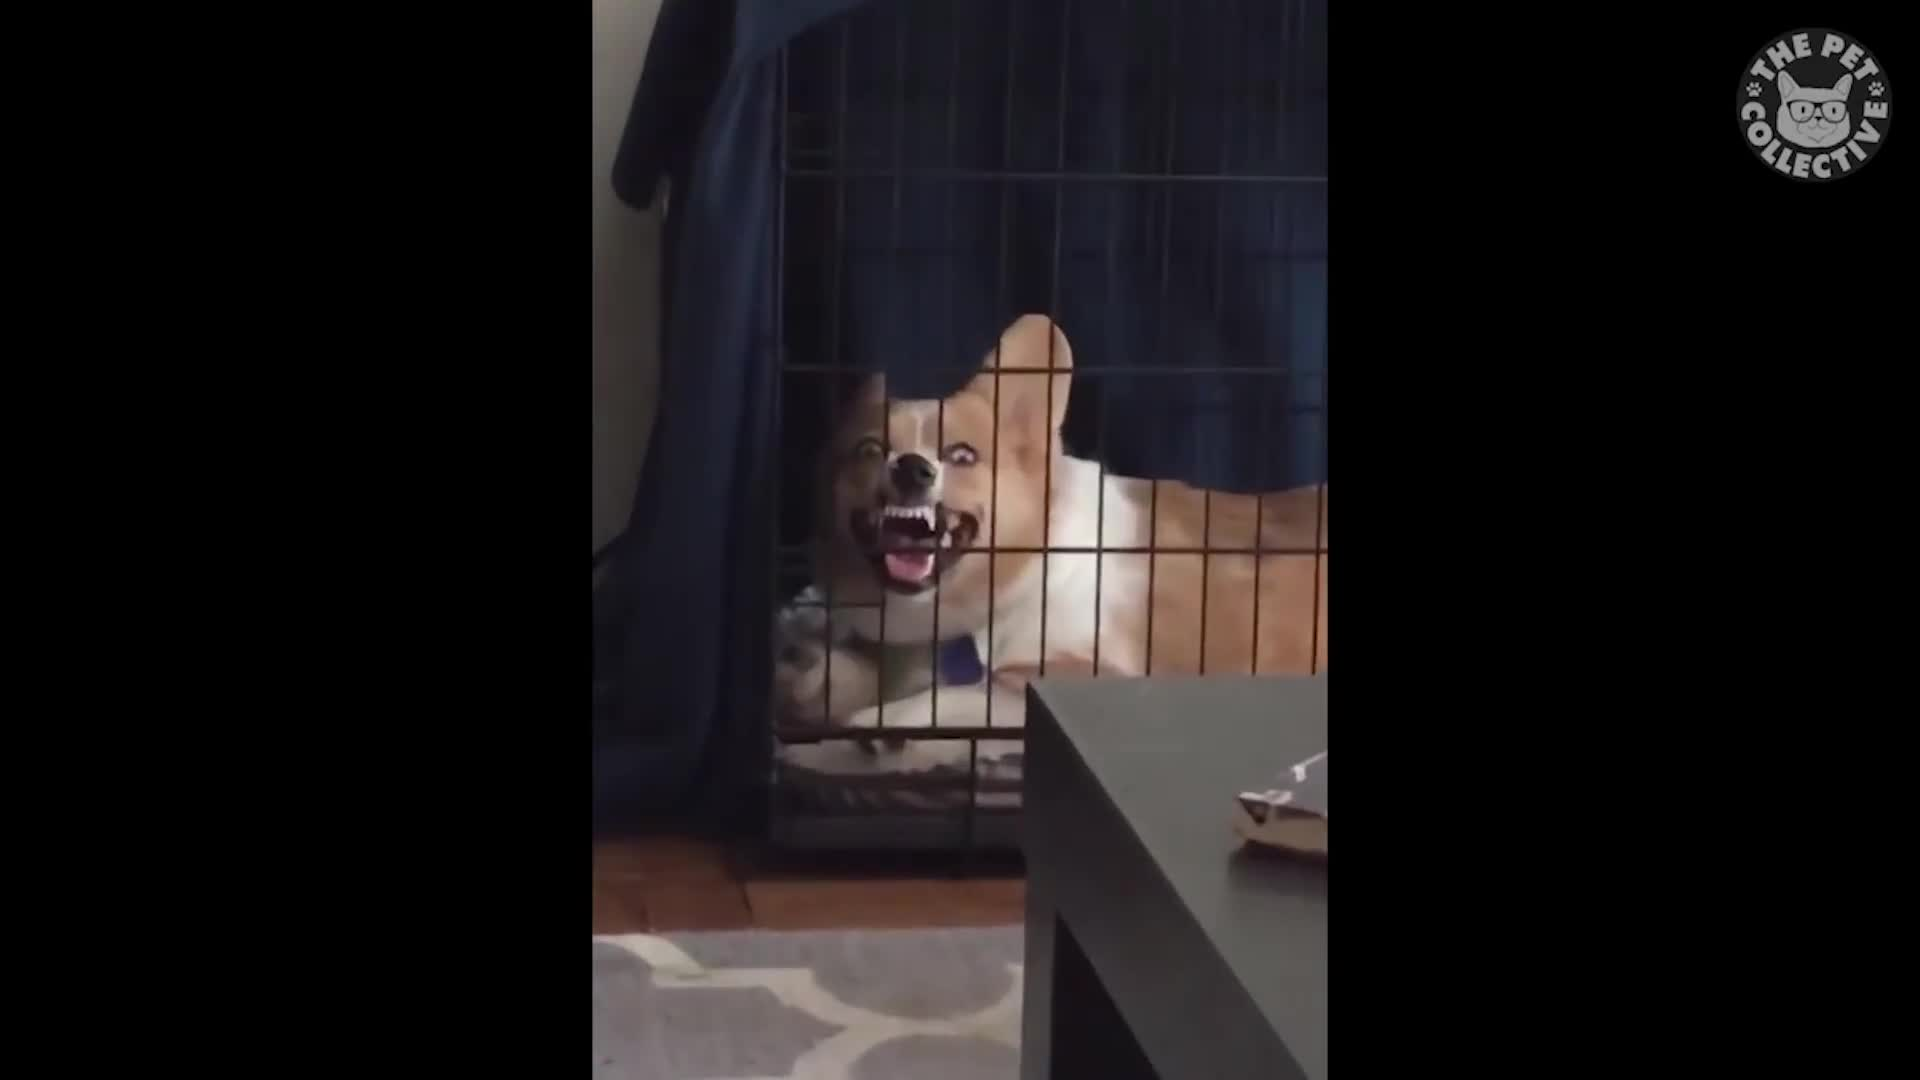 Image of: Pet Collective Dark Dogs Funny Dog Video Compilation 2017 Gif Gfycat Dark Dogs Funny Dog Video Compilation 2017 Gif Find Make